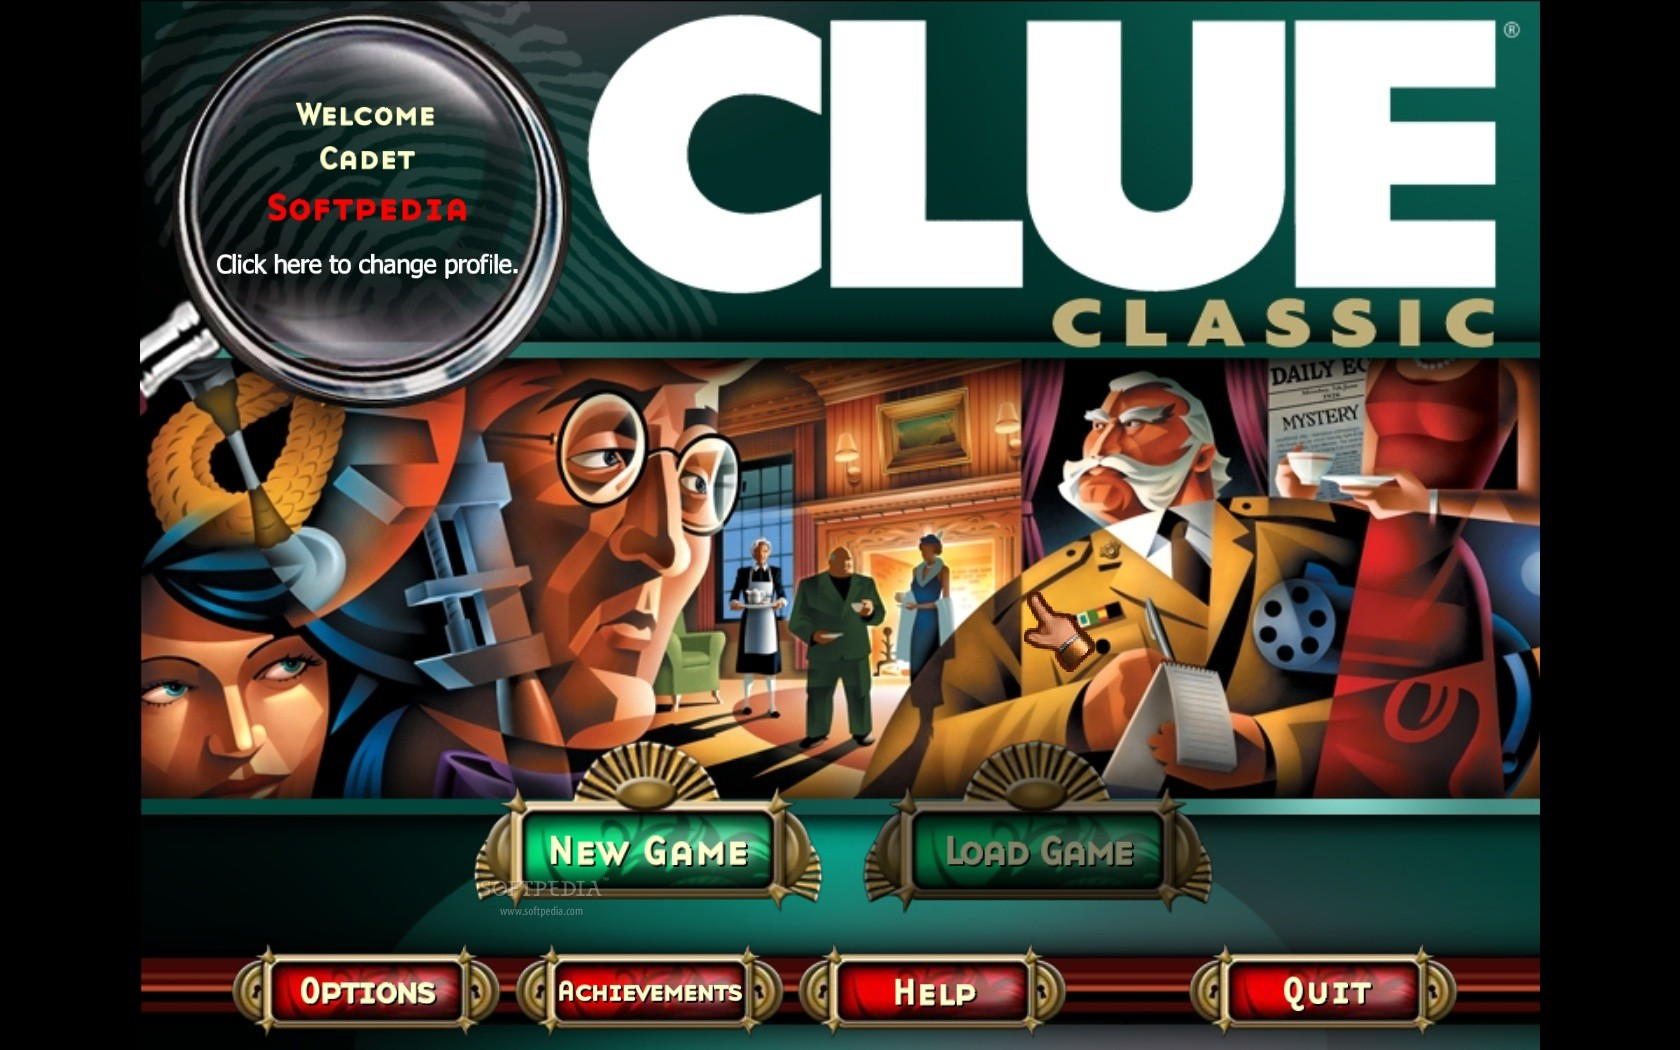 cluedo classic free download